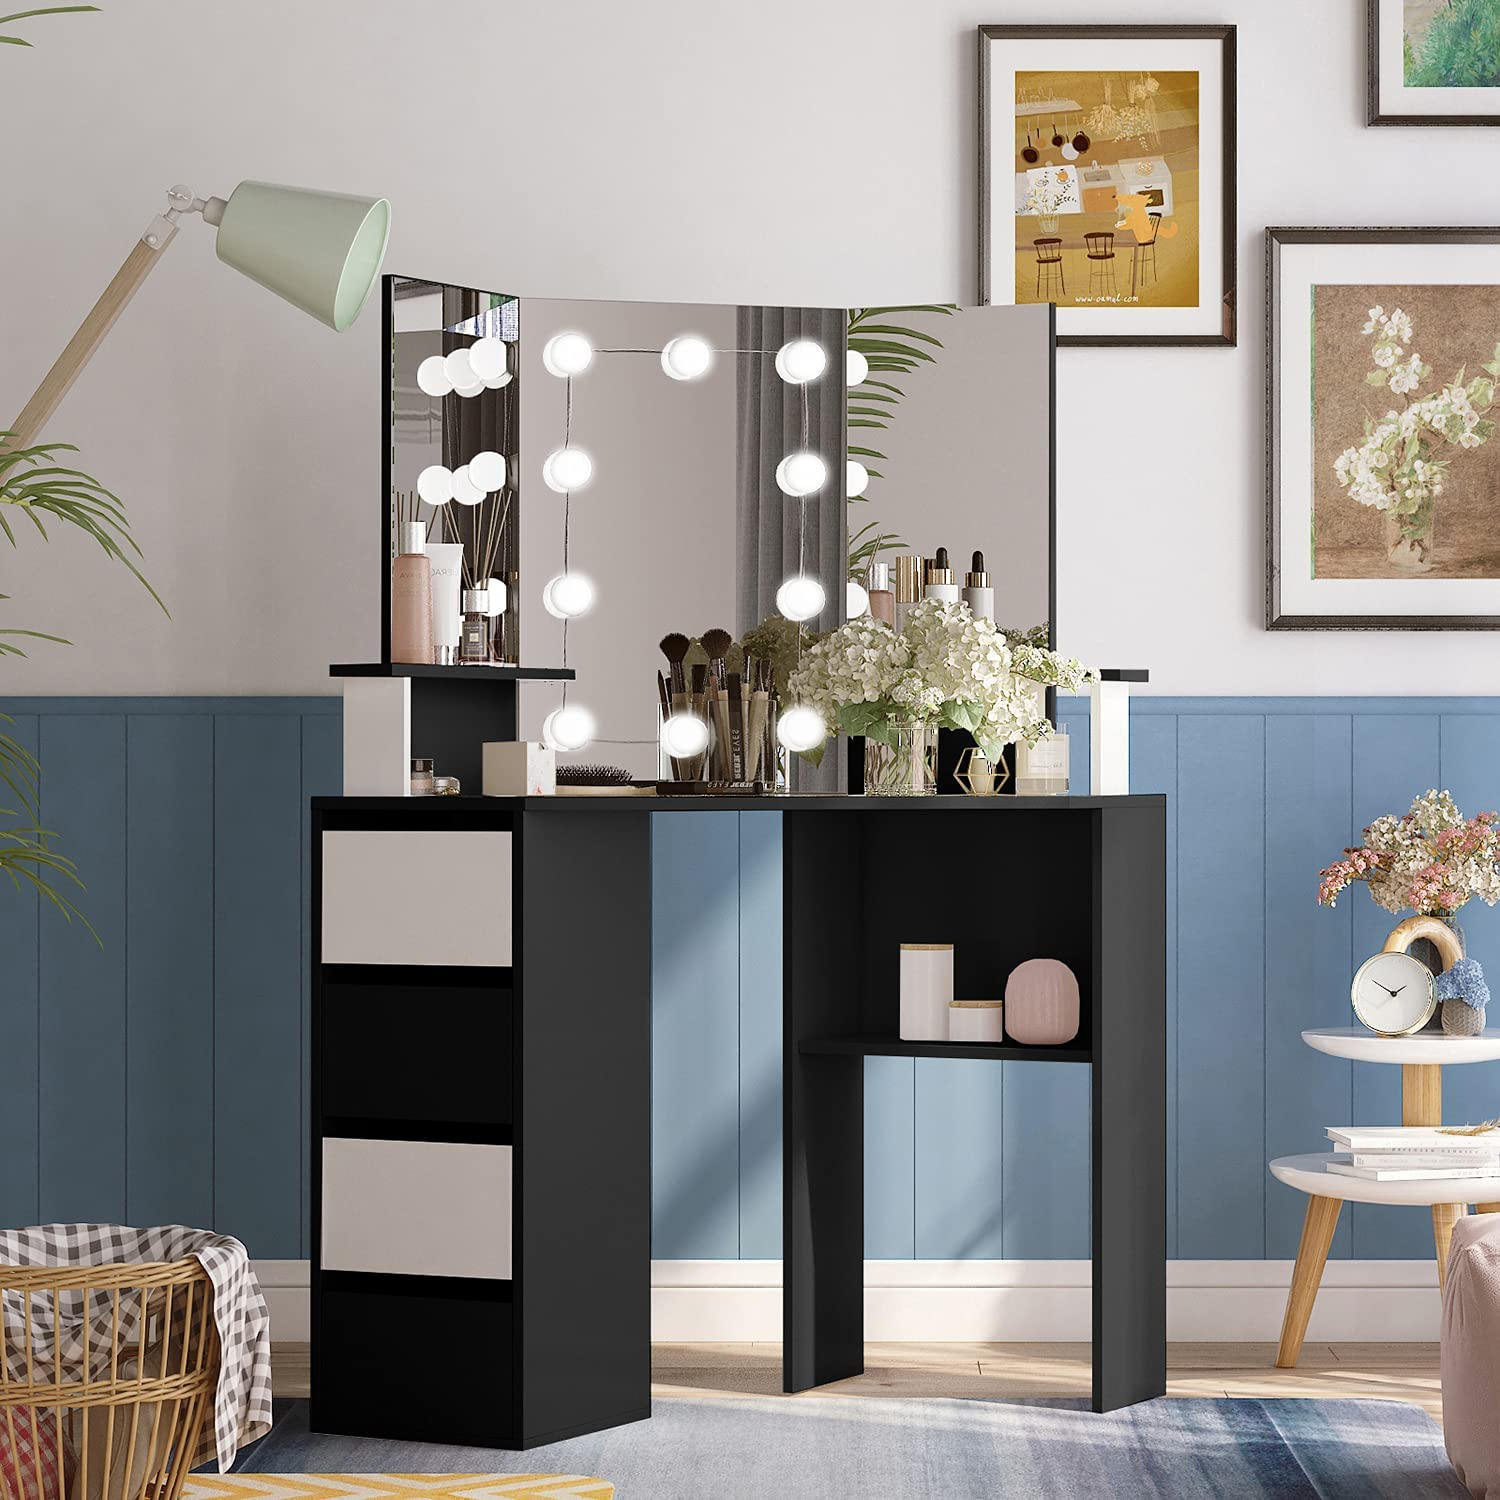 Corner Vanity Table Set with Three-Fold Mirror, Makeup Desk with 4 Storage Shelves, Dressing Table with 10 Lights for Women, Dresser Desk Vanity Set for Small Spaces, Bedroom, Girl White and Black